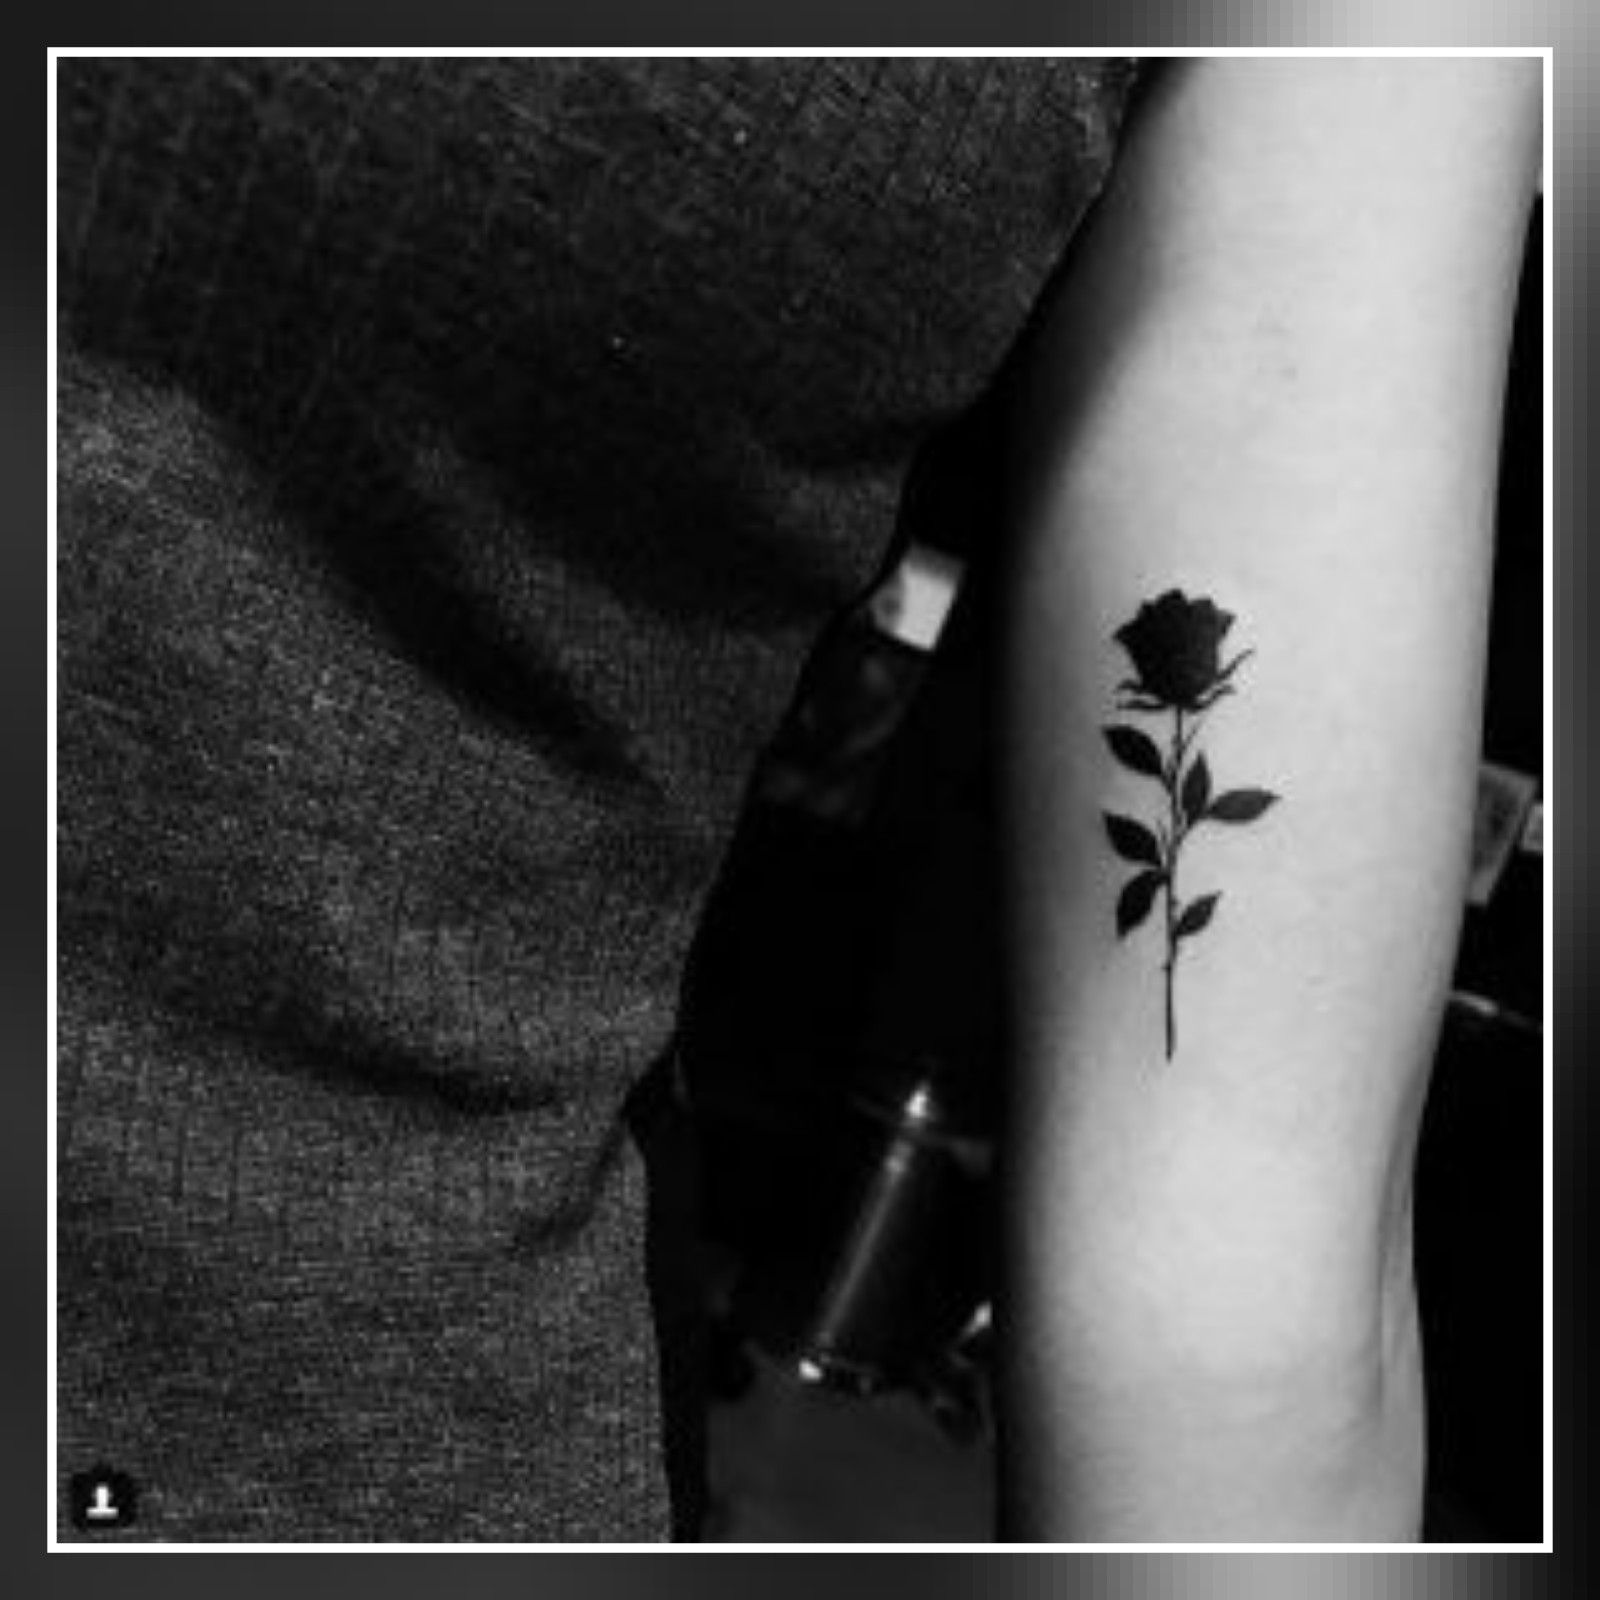 45 Small Black Rose Tattoo Ideas Small Rose Tattoo Rose Tattoo On Arm Black Rose Tattoos